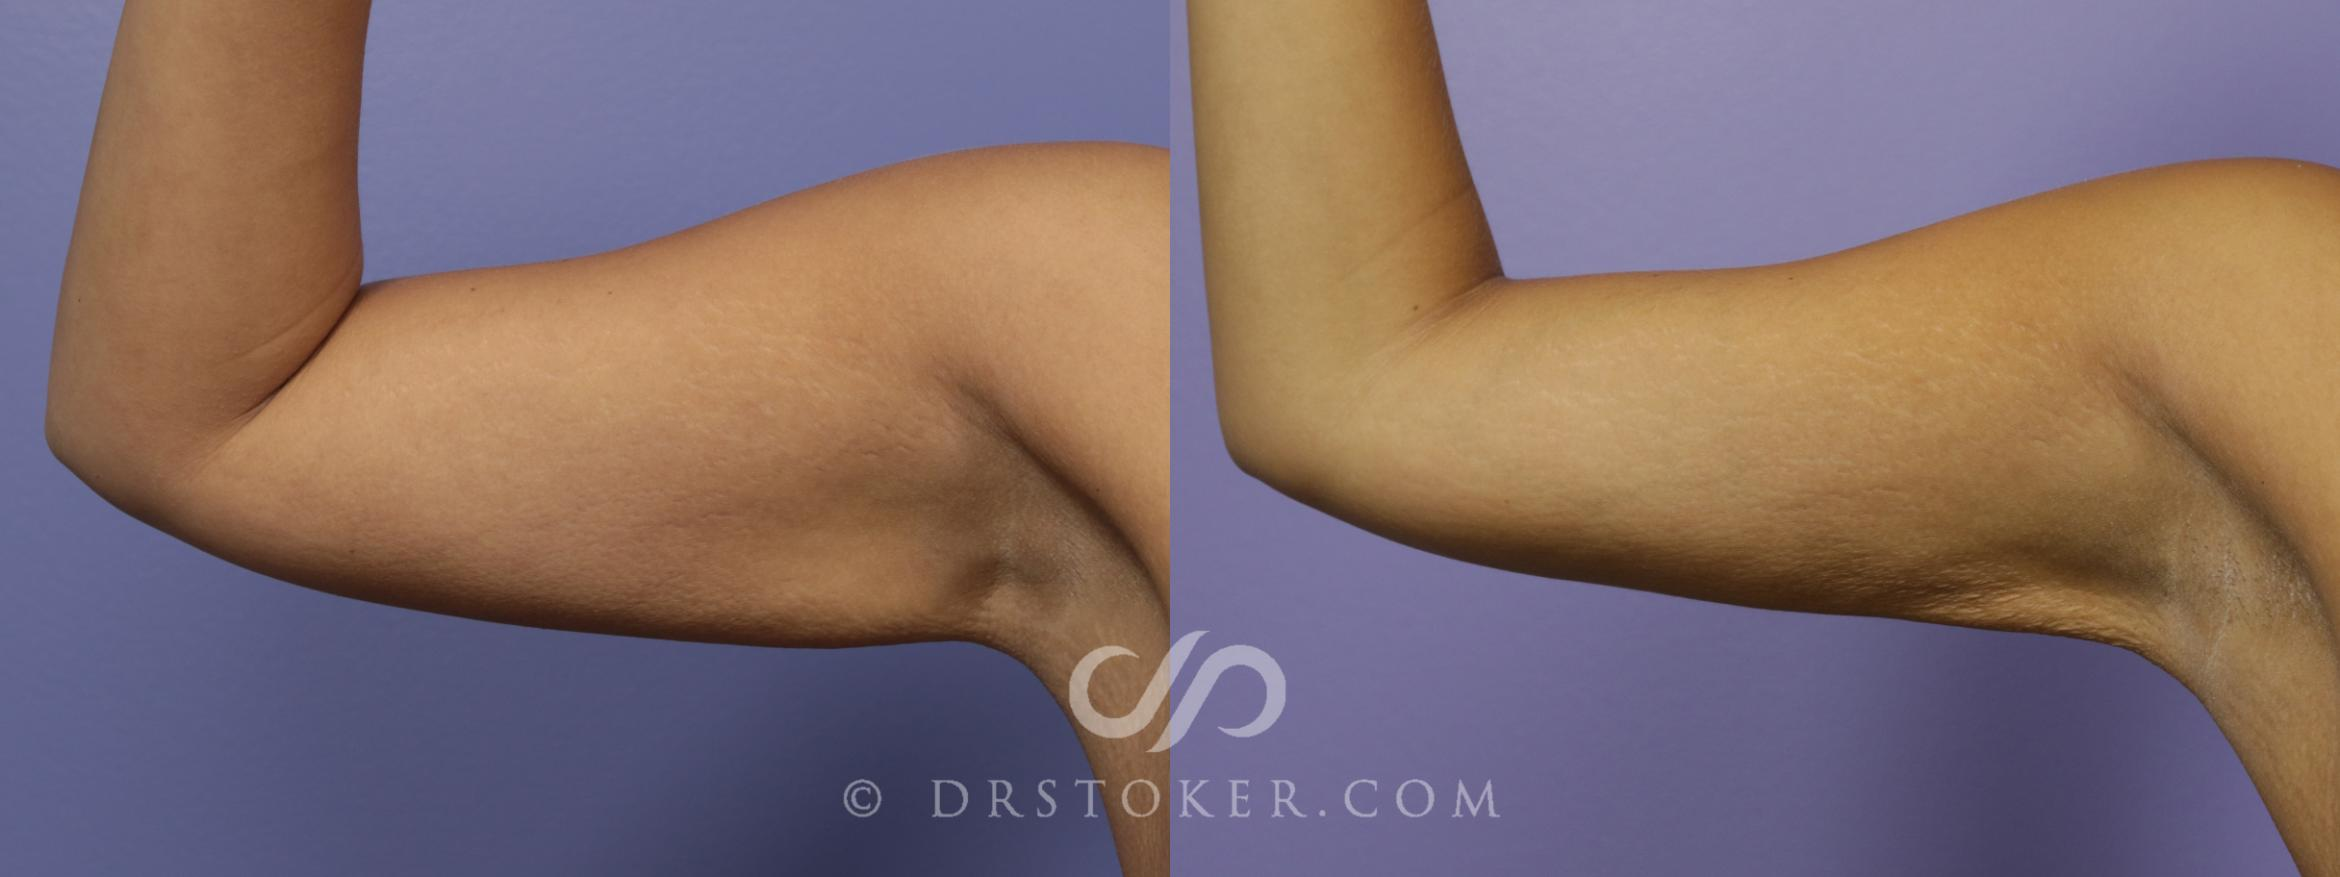 Liposuction - Axillary Fat Removal Case 1482 Before & After View #1 | Marina del Rey, CA | Dr. David Stoker